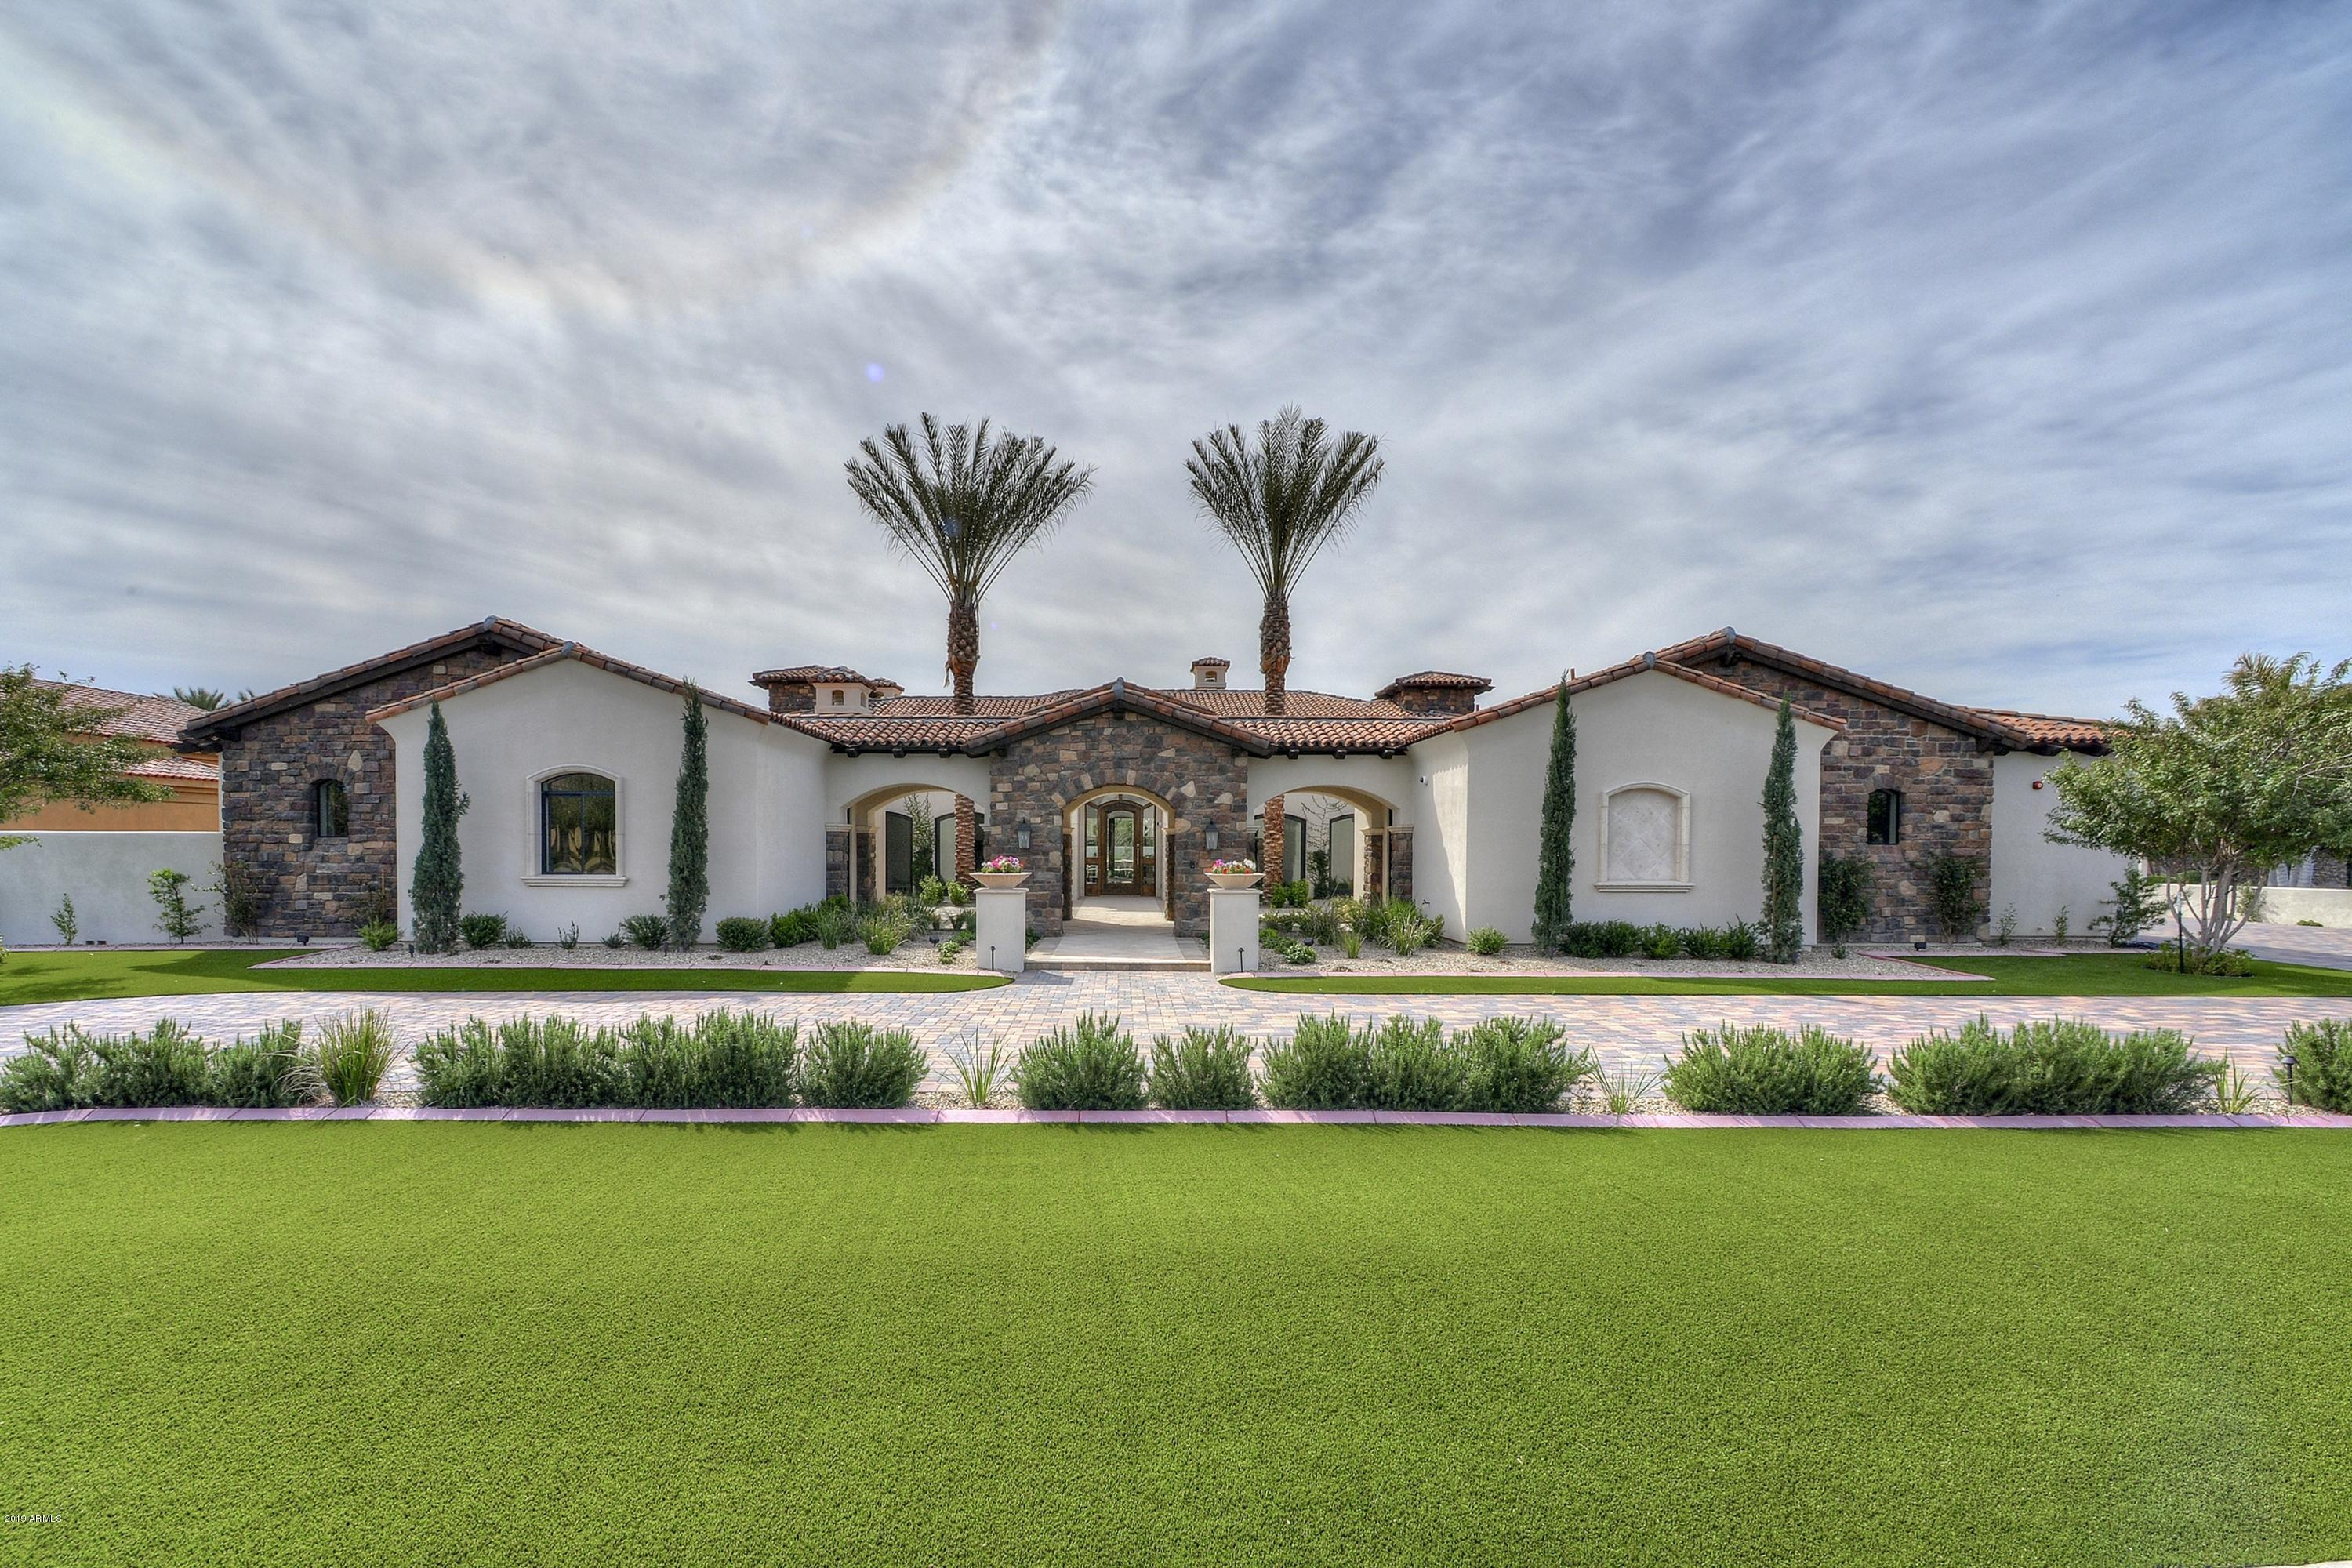 8065 W Expedition Way, Peoria, Arizona